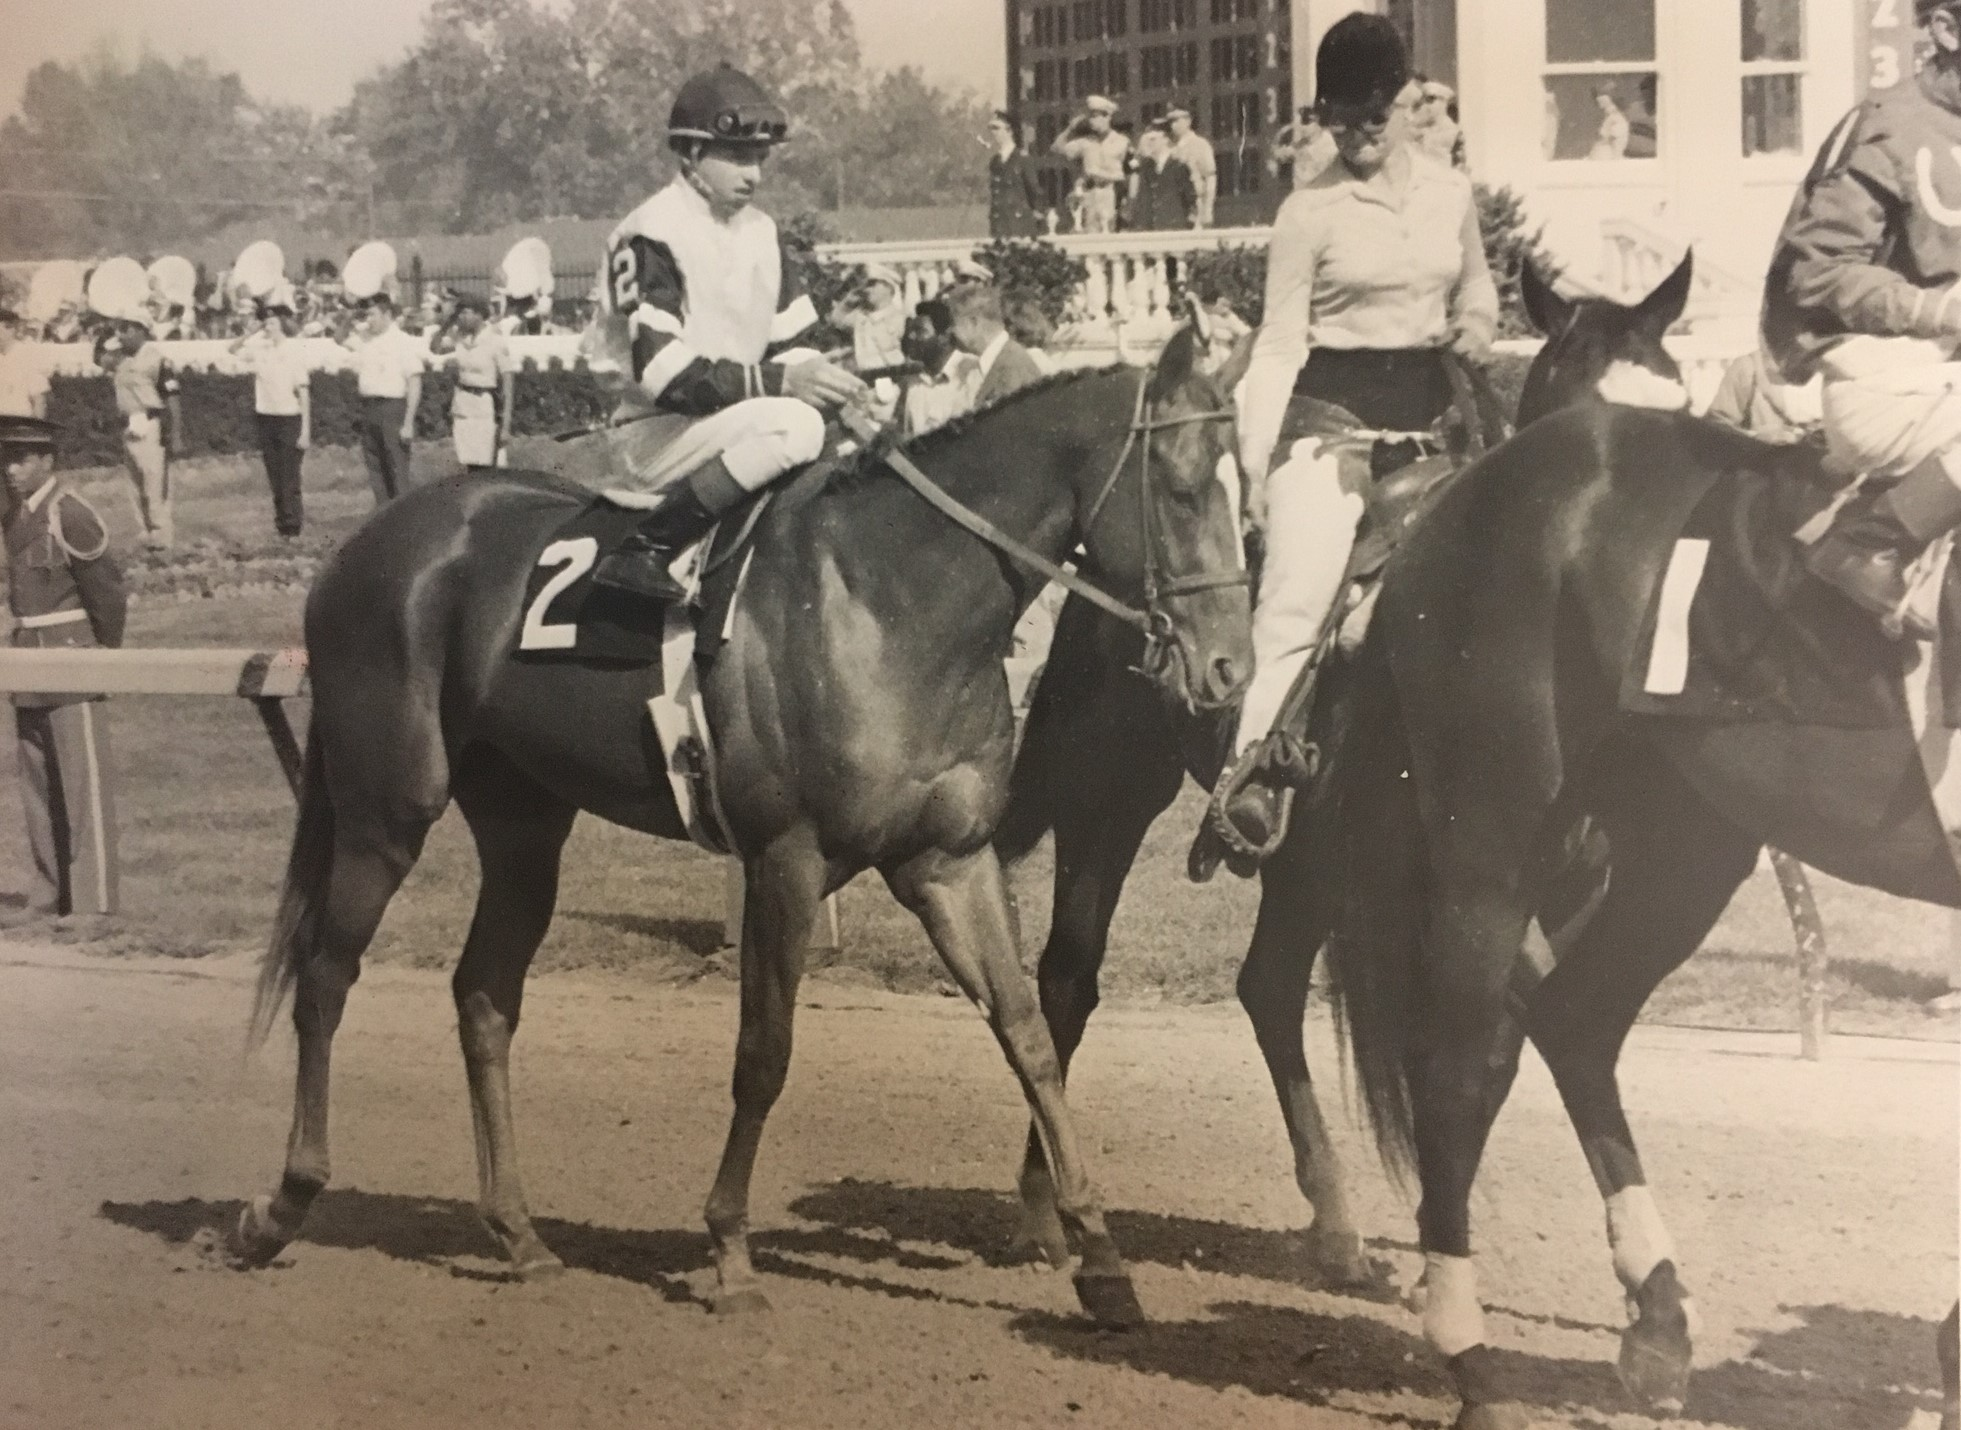 Affirmed in 1978 Kentucky Derby post parade